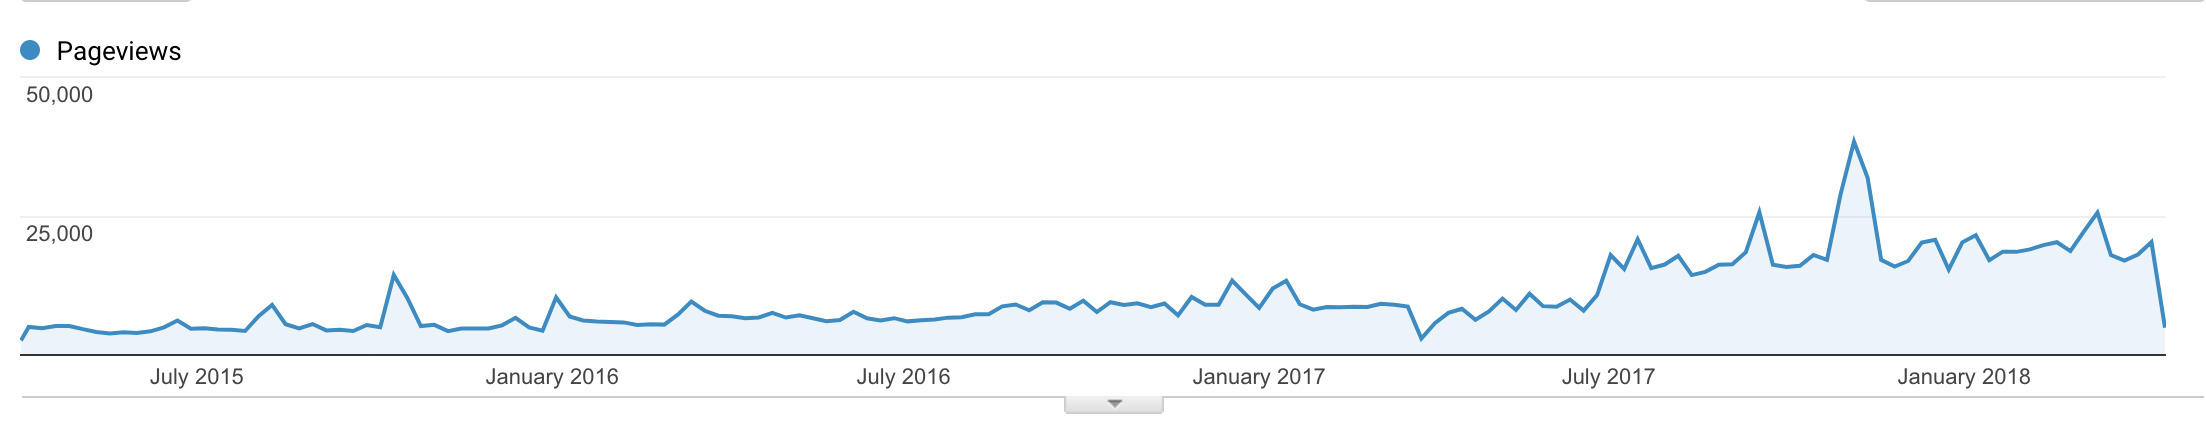 Blog traffic from Apr 2015 to Apr 2018